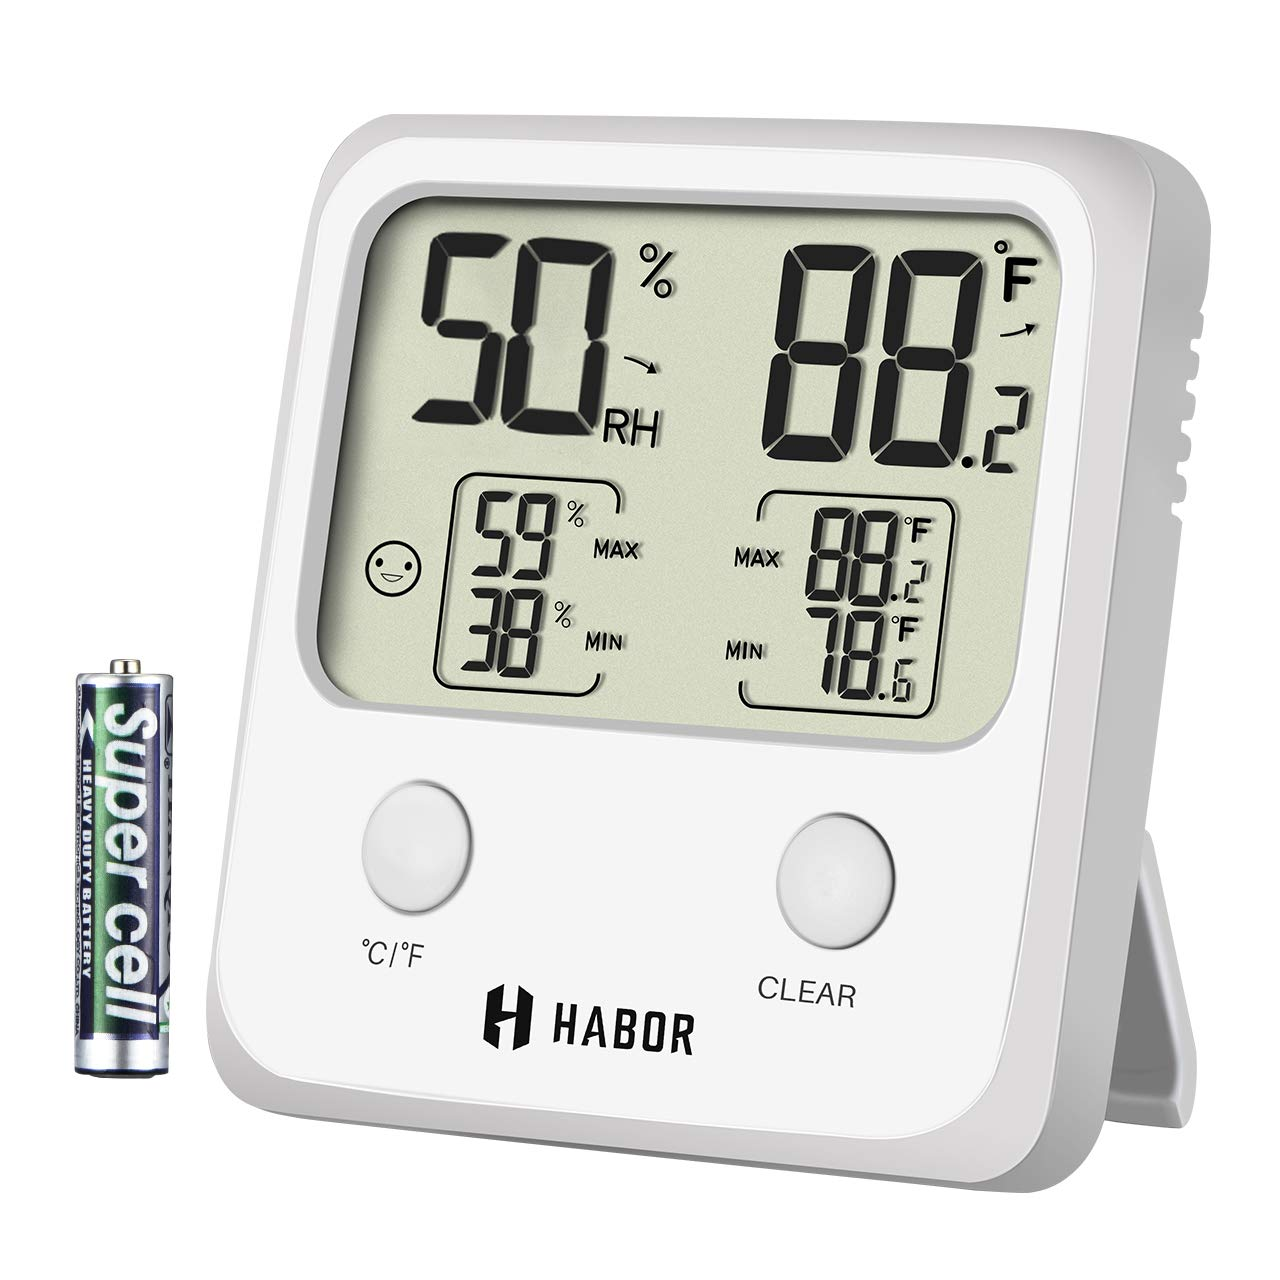 Habor Upgraded Indoor Thermometer, Digital Indoor Hygrometer,Large Size Temperature Humidity Monitor with High Accuracy Thermometer Gauge Indicator for Home Office Greenhouse, White (3.3 X 3.2 Inch) AW